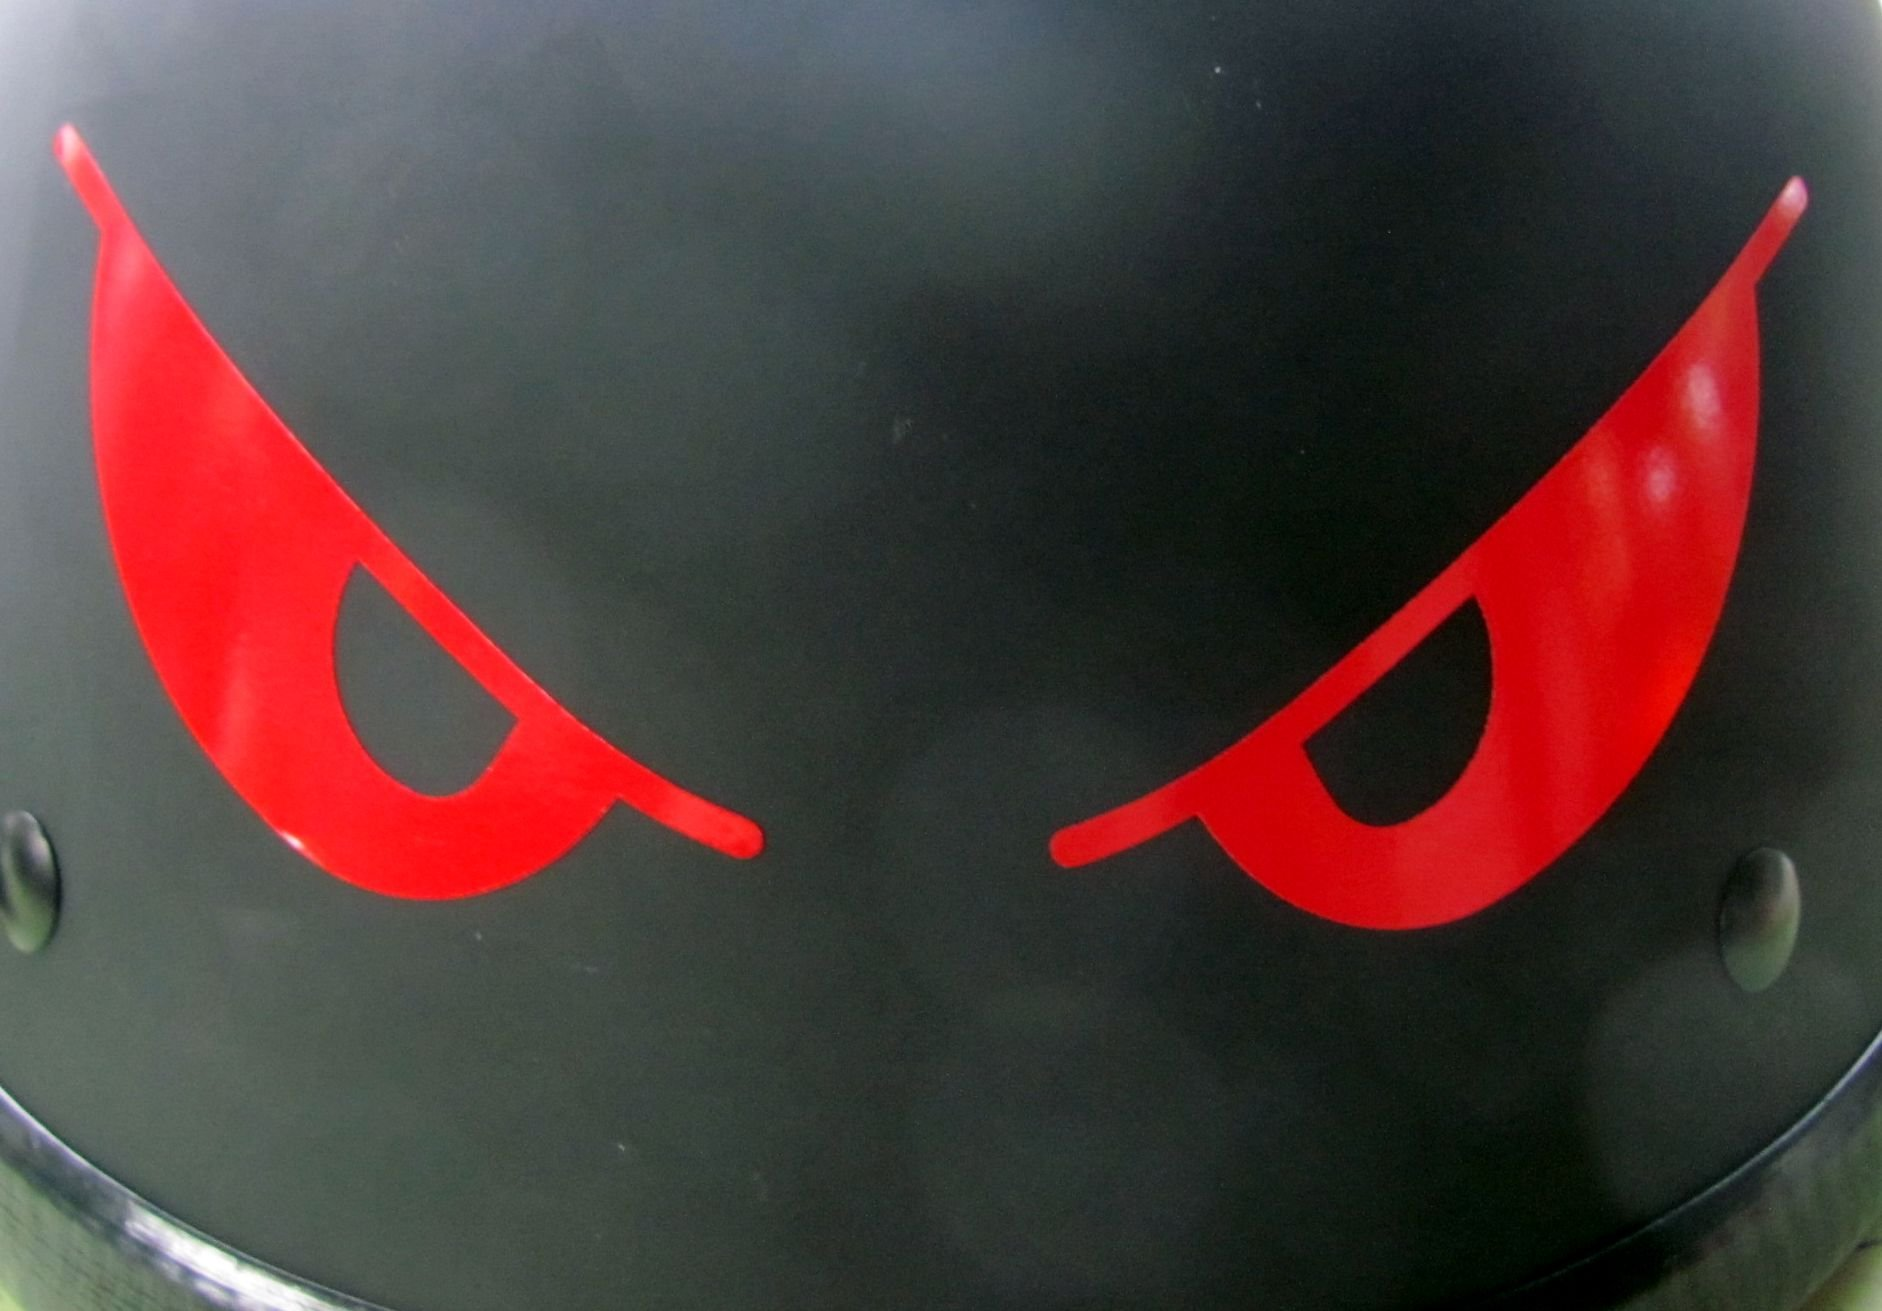 """Reflective Evil Eyes in Red - 5 3/4"""" x 2""""die cut vinyl decal for helmets, windows, cars, trucks, tool boxes, laptops…"""